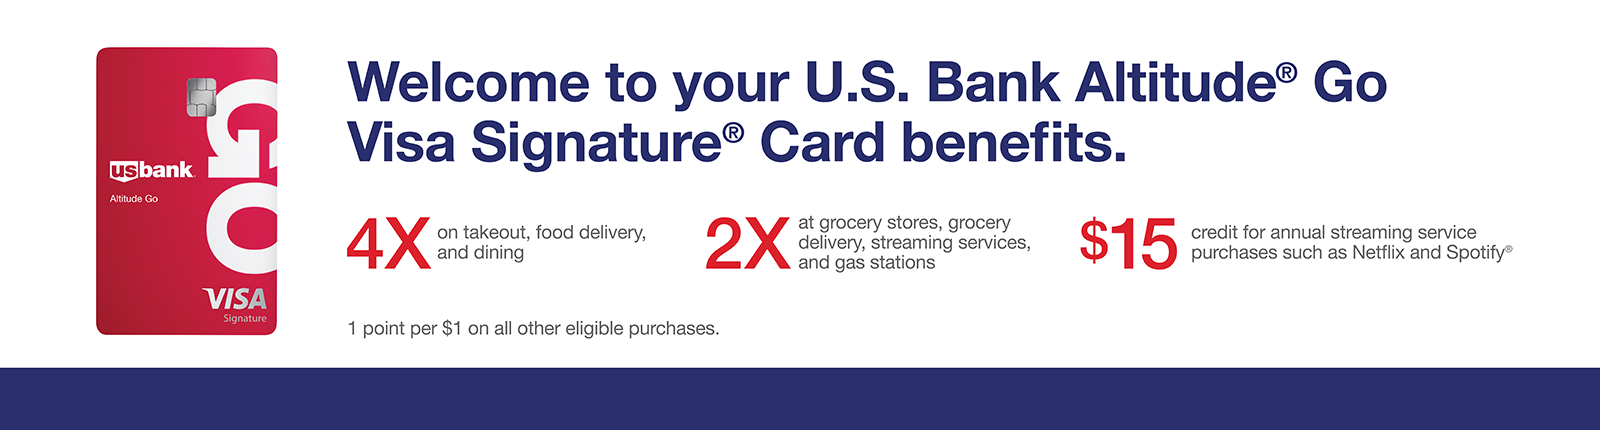 bank of america visa signature benefits